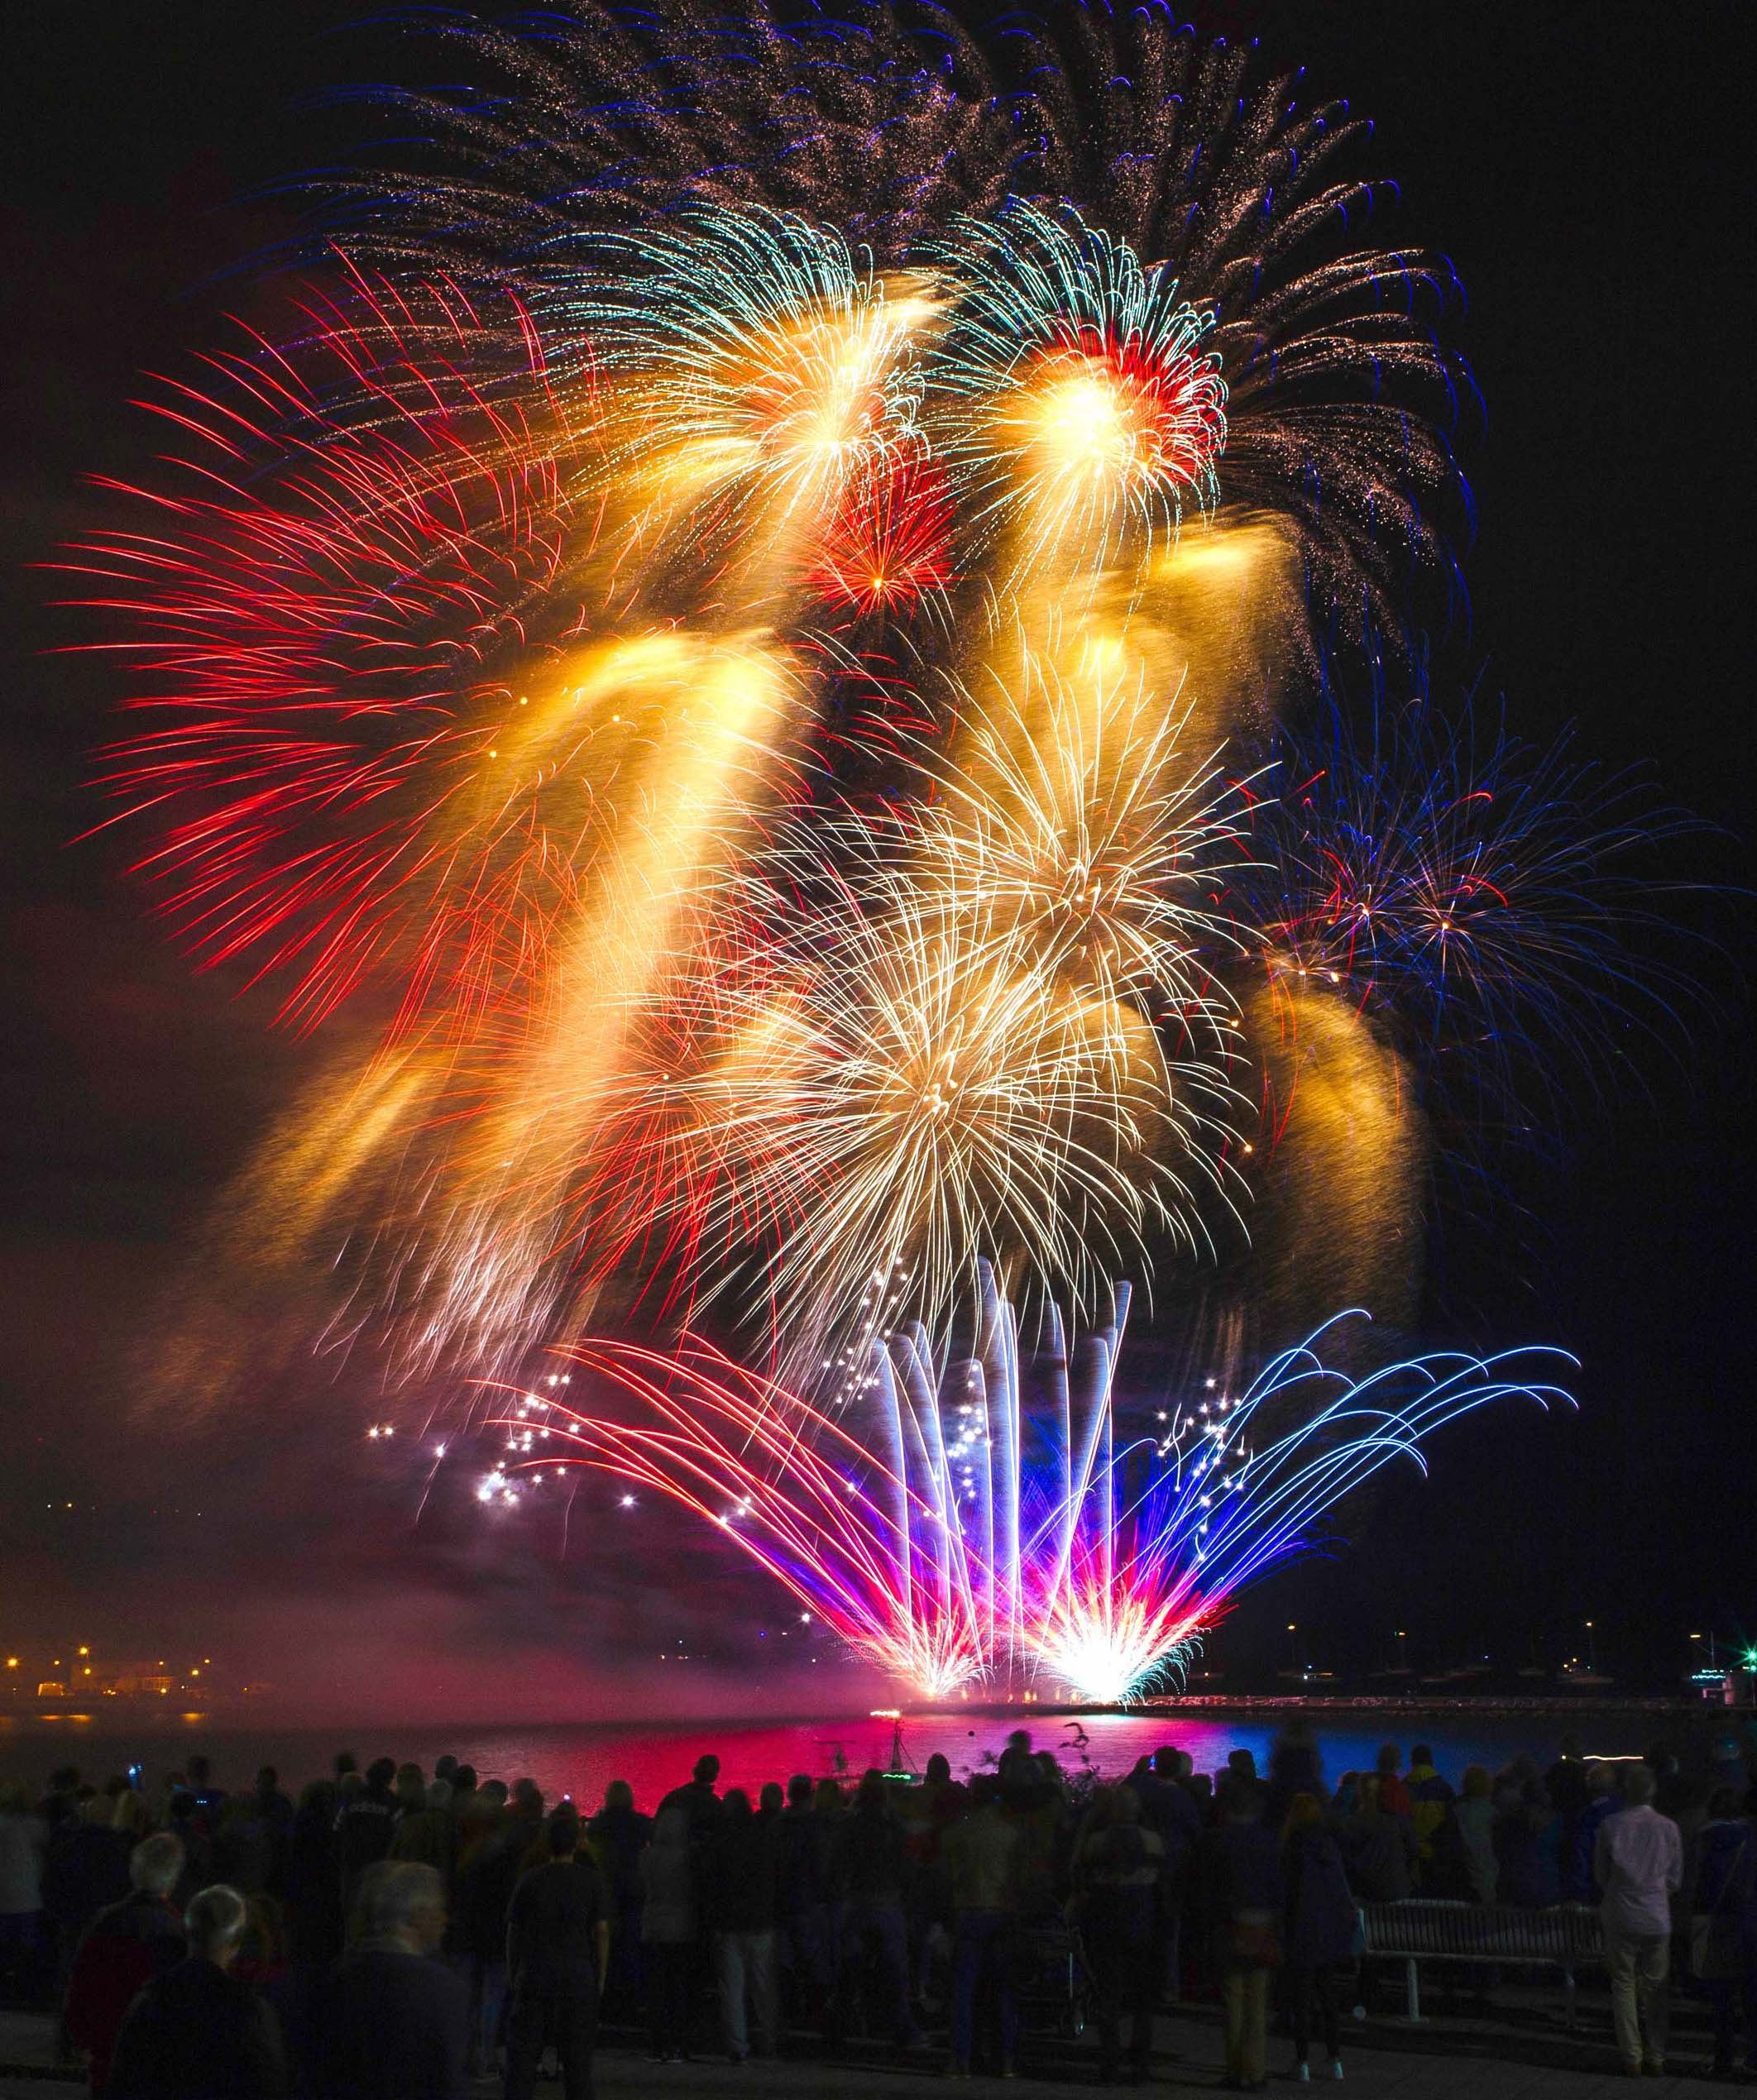 How Fantastic Fireworks Became Double Winners Of The British Fireworks Championship